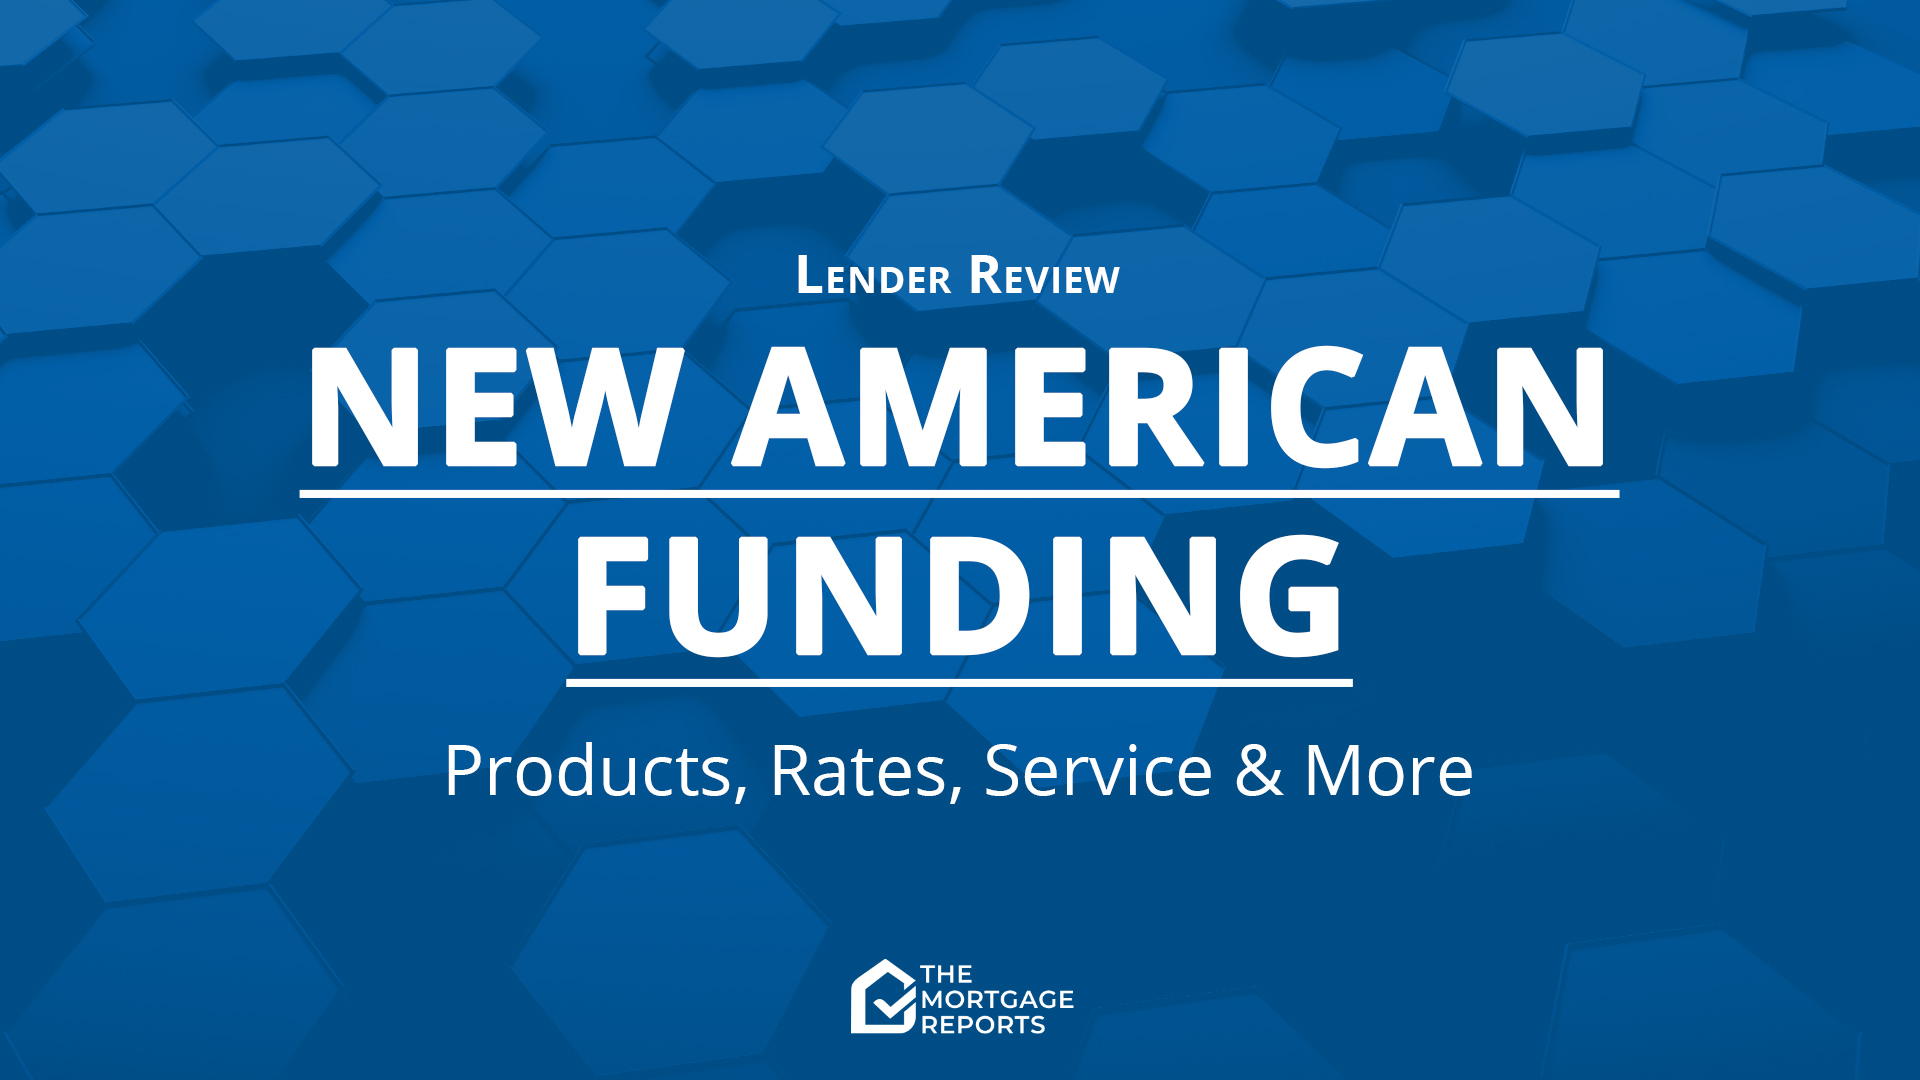 New American Funding Review for 2020